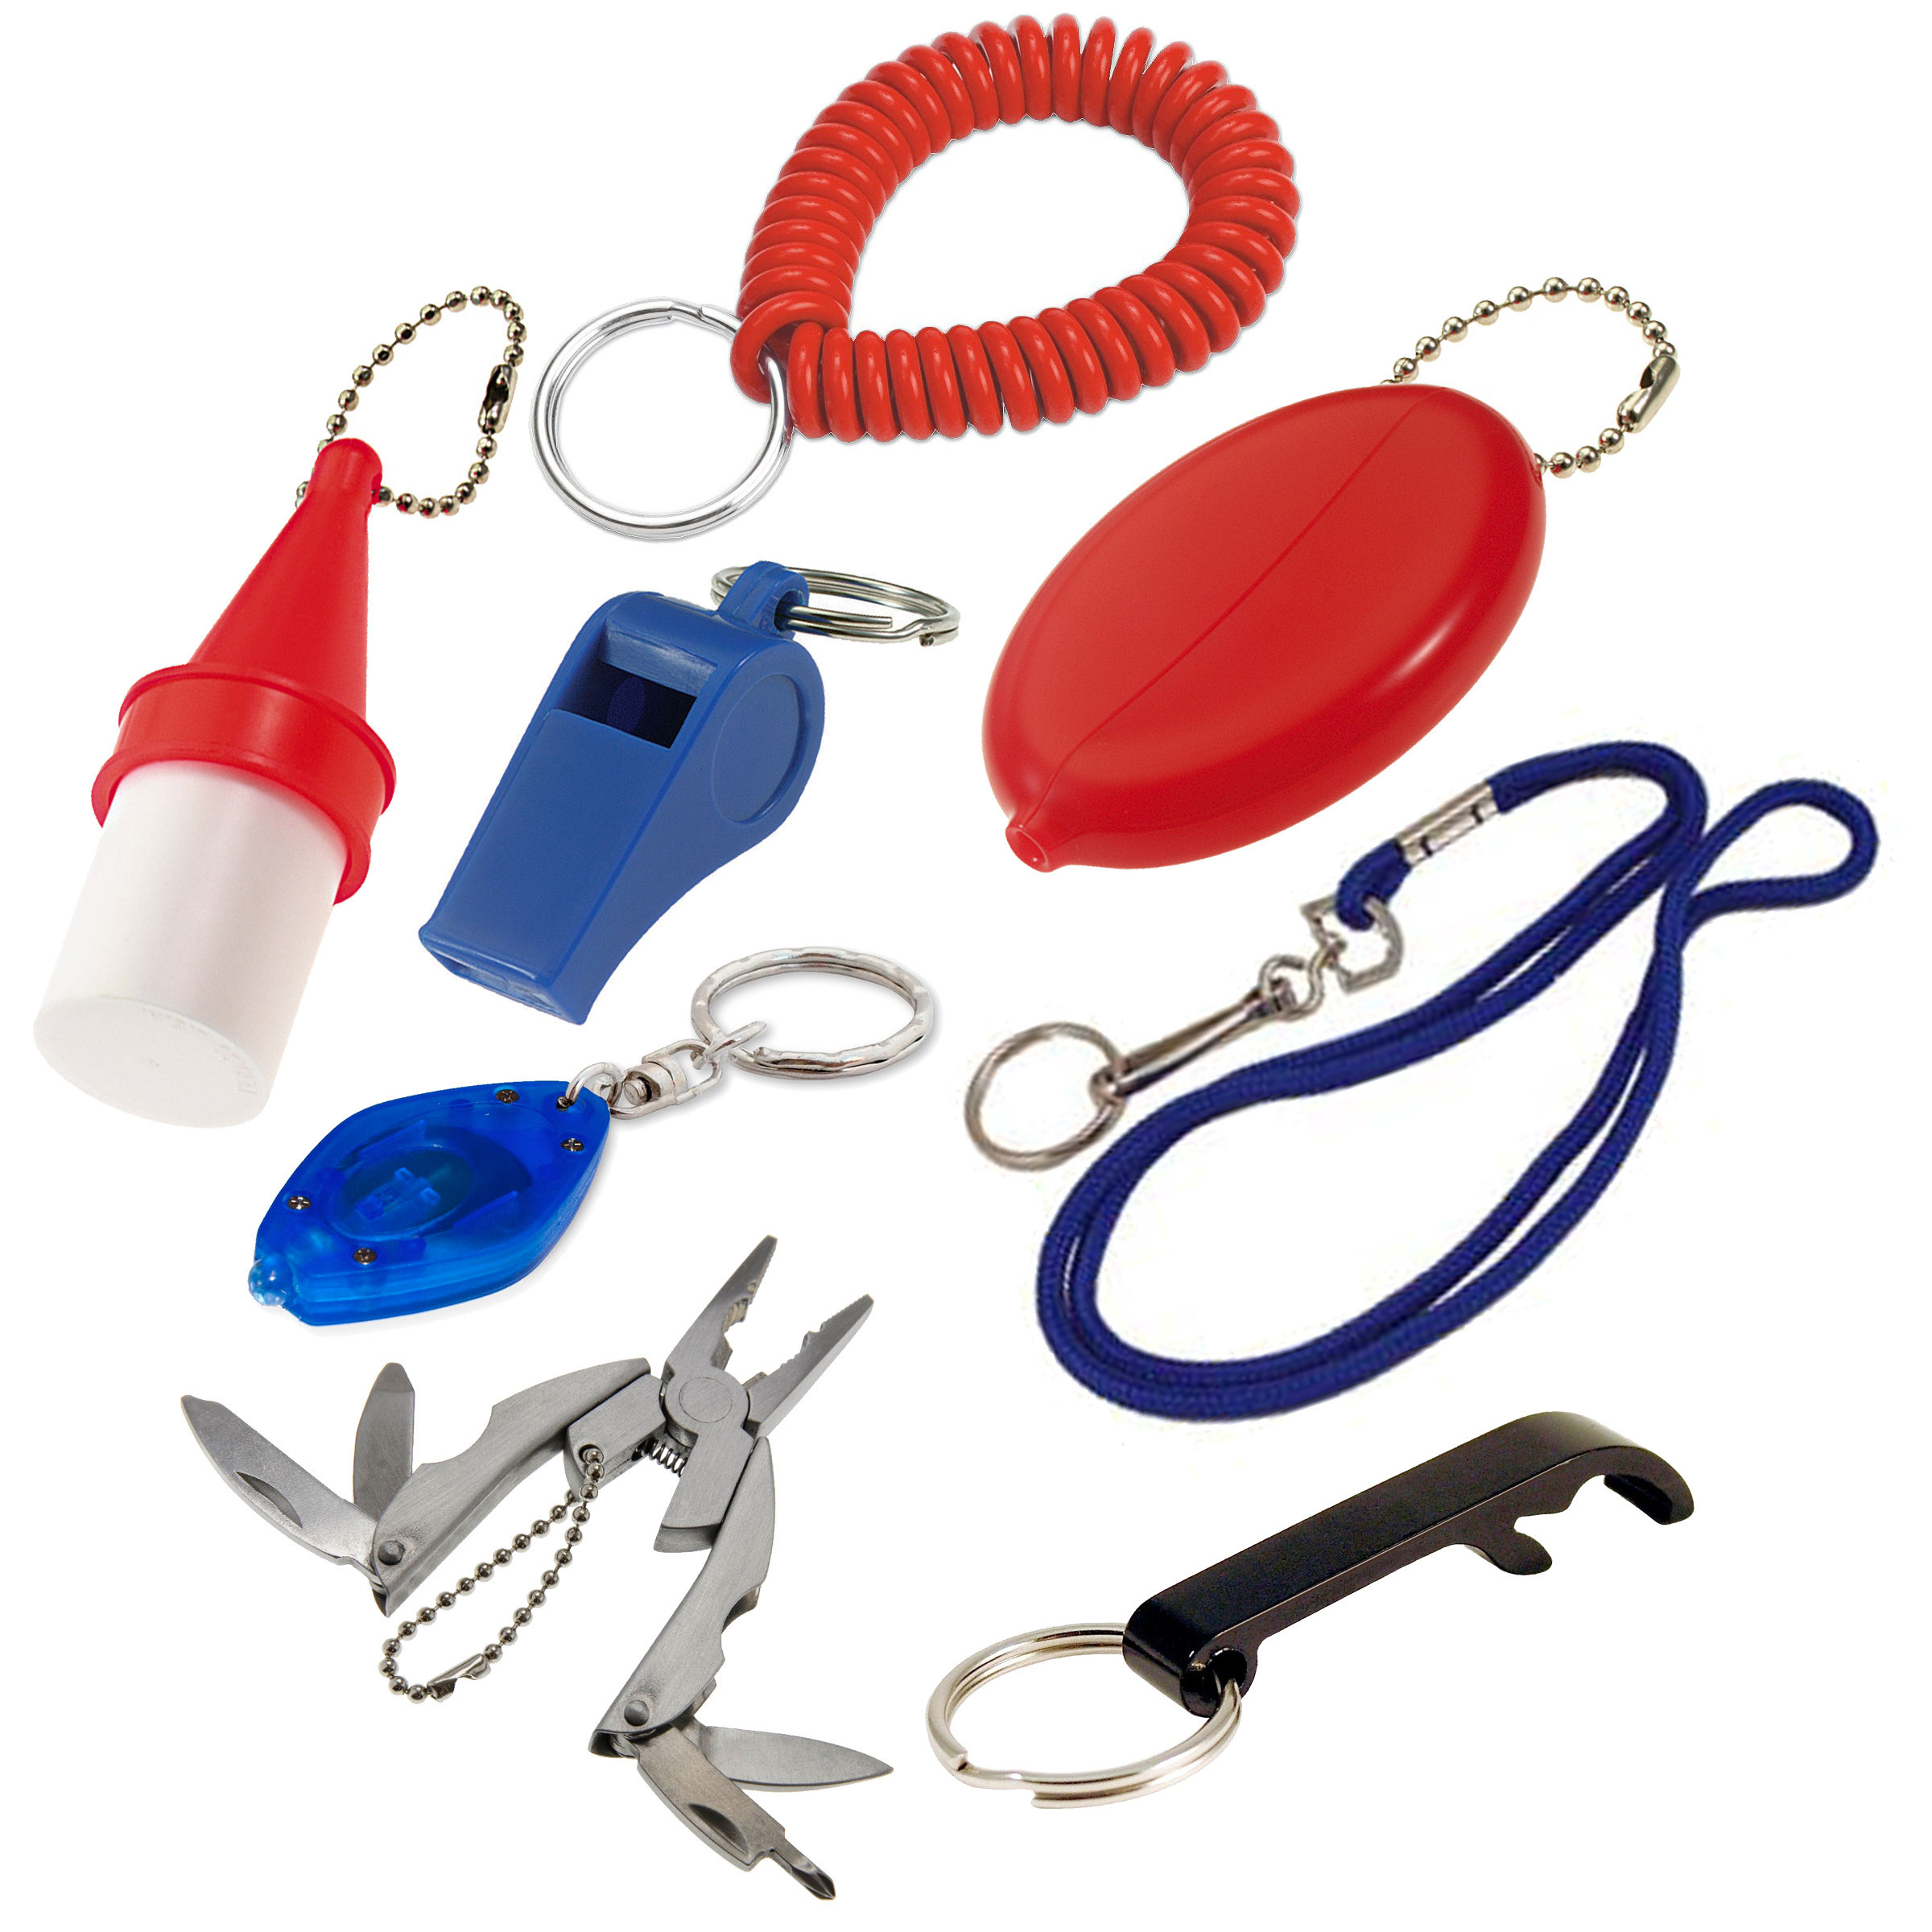 Useful Key Chains - Every Day Carry